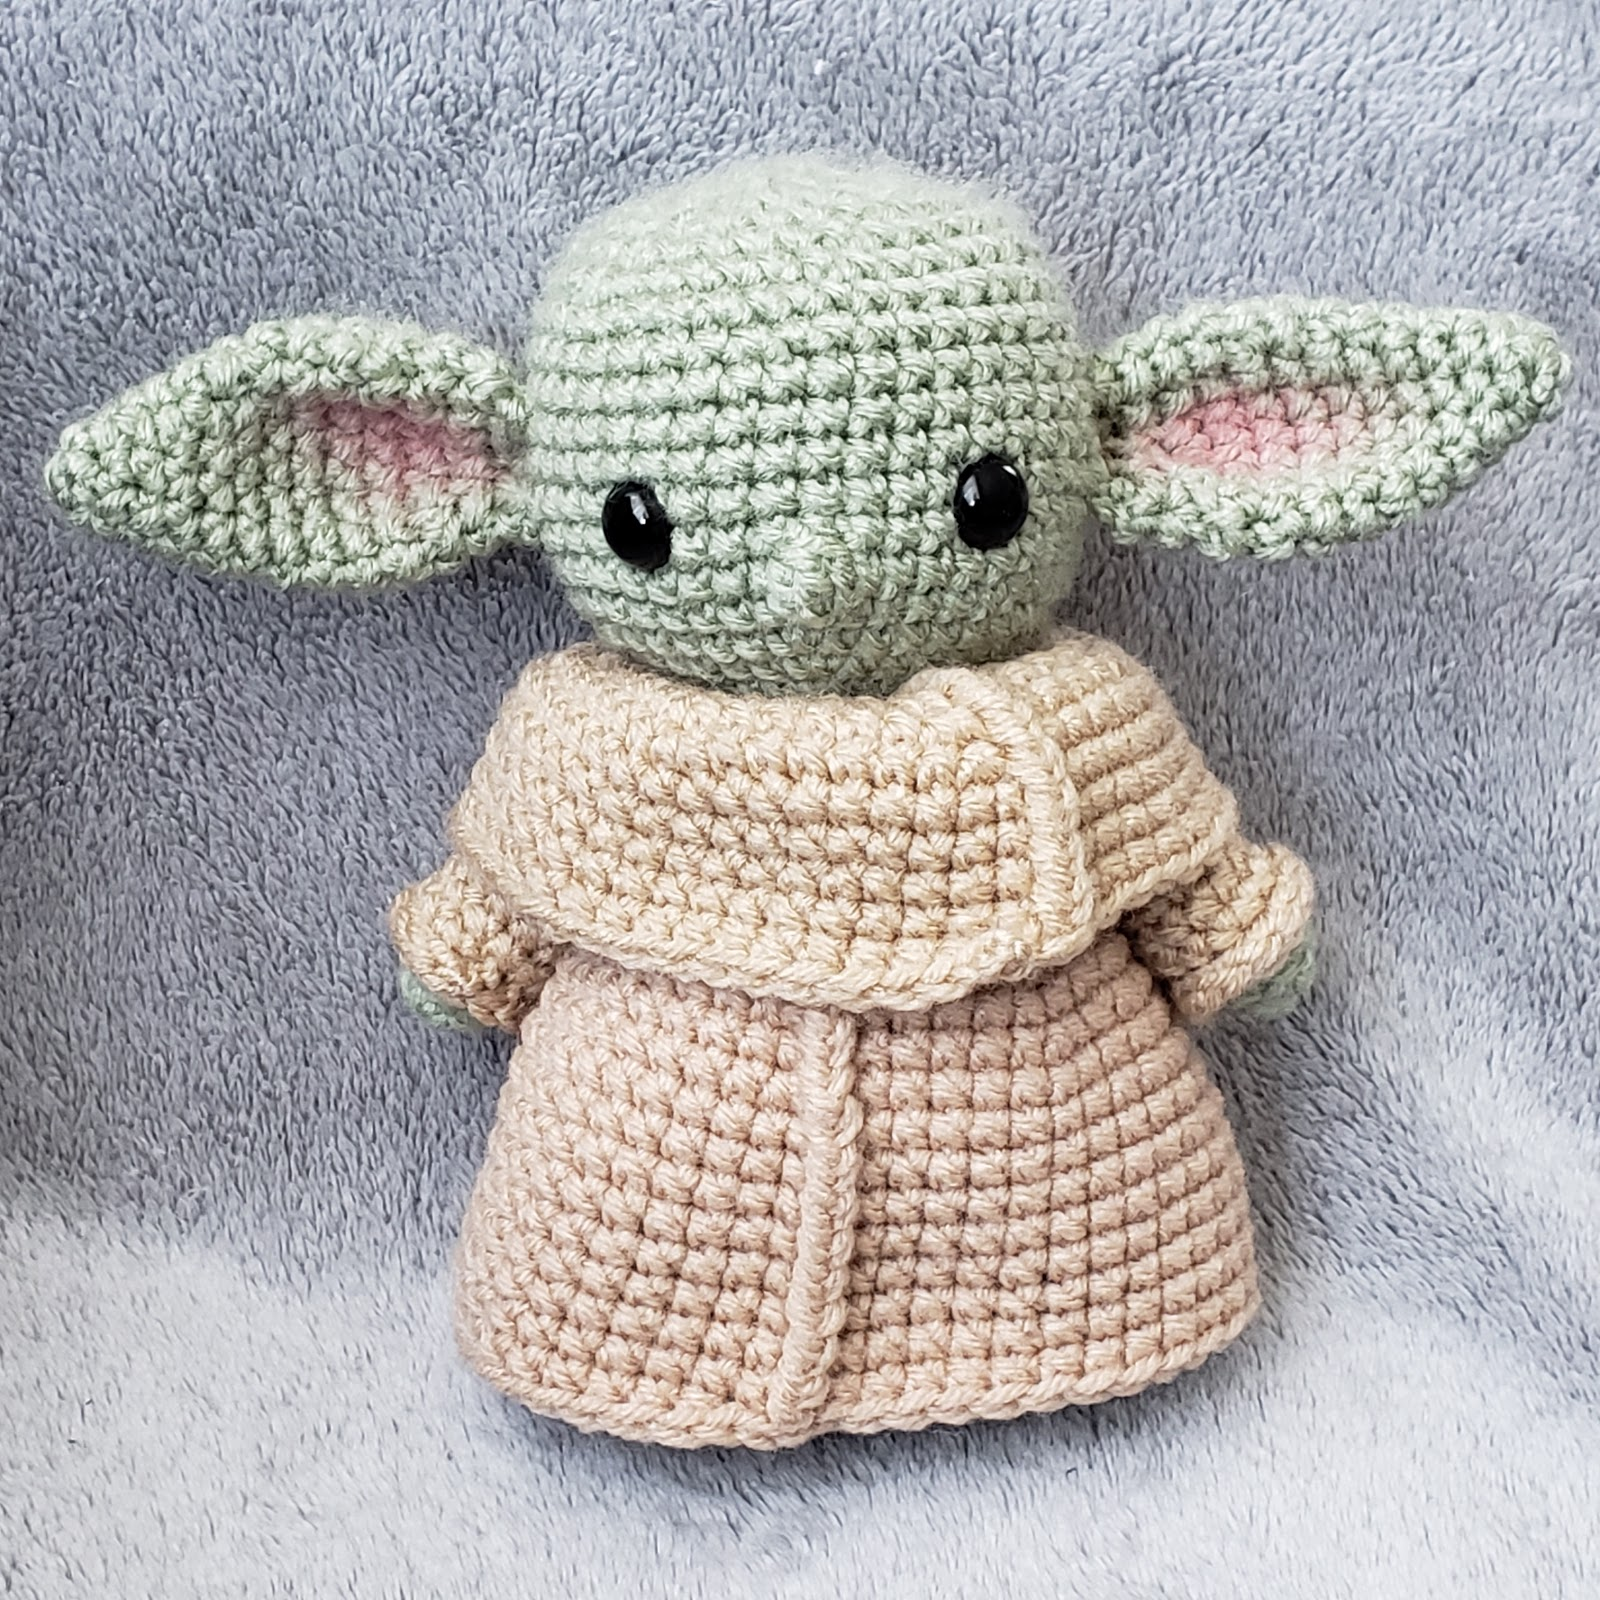 10 Amigurumi Yoda Crochet Patterns | Crochet patterns amigurumi ... | 1600x1600